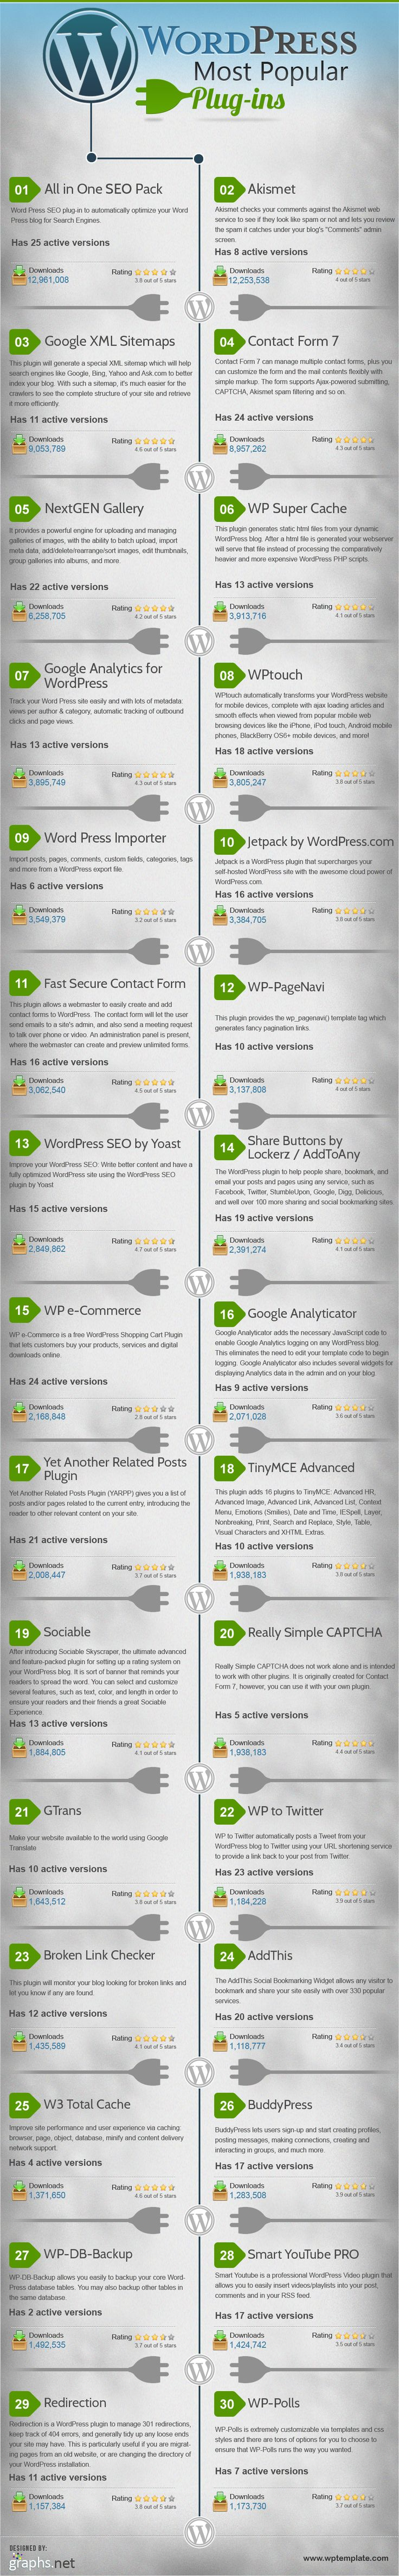 INFOGRAPHIC: WordPress Most Popular Plugins